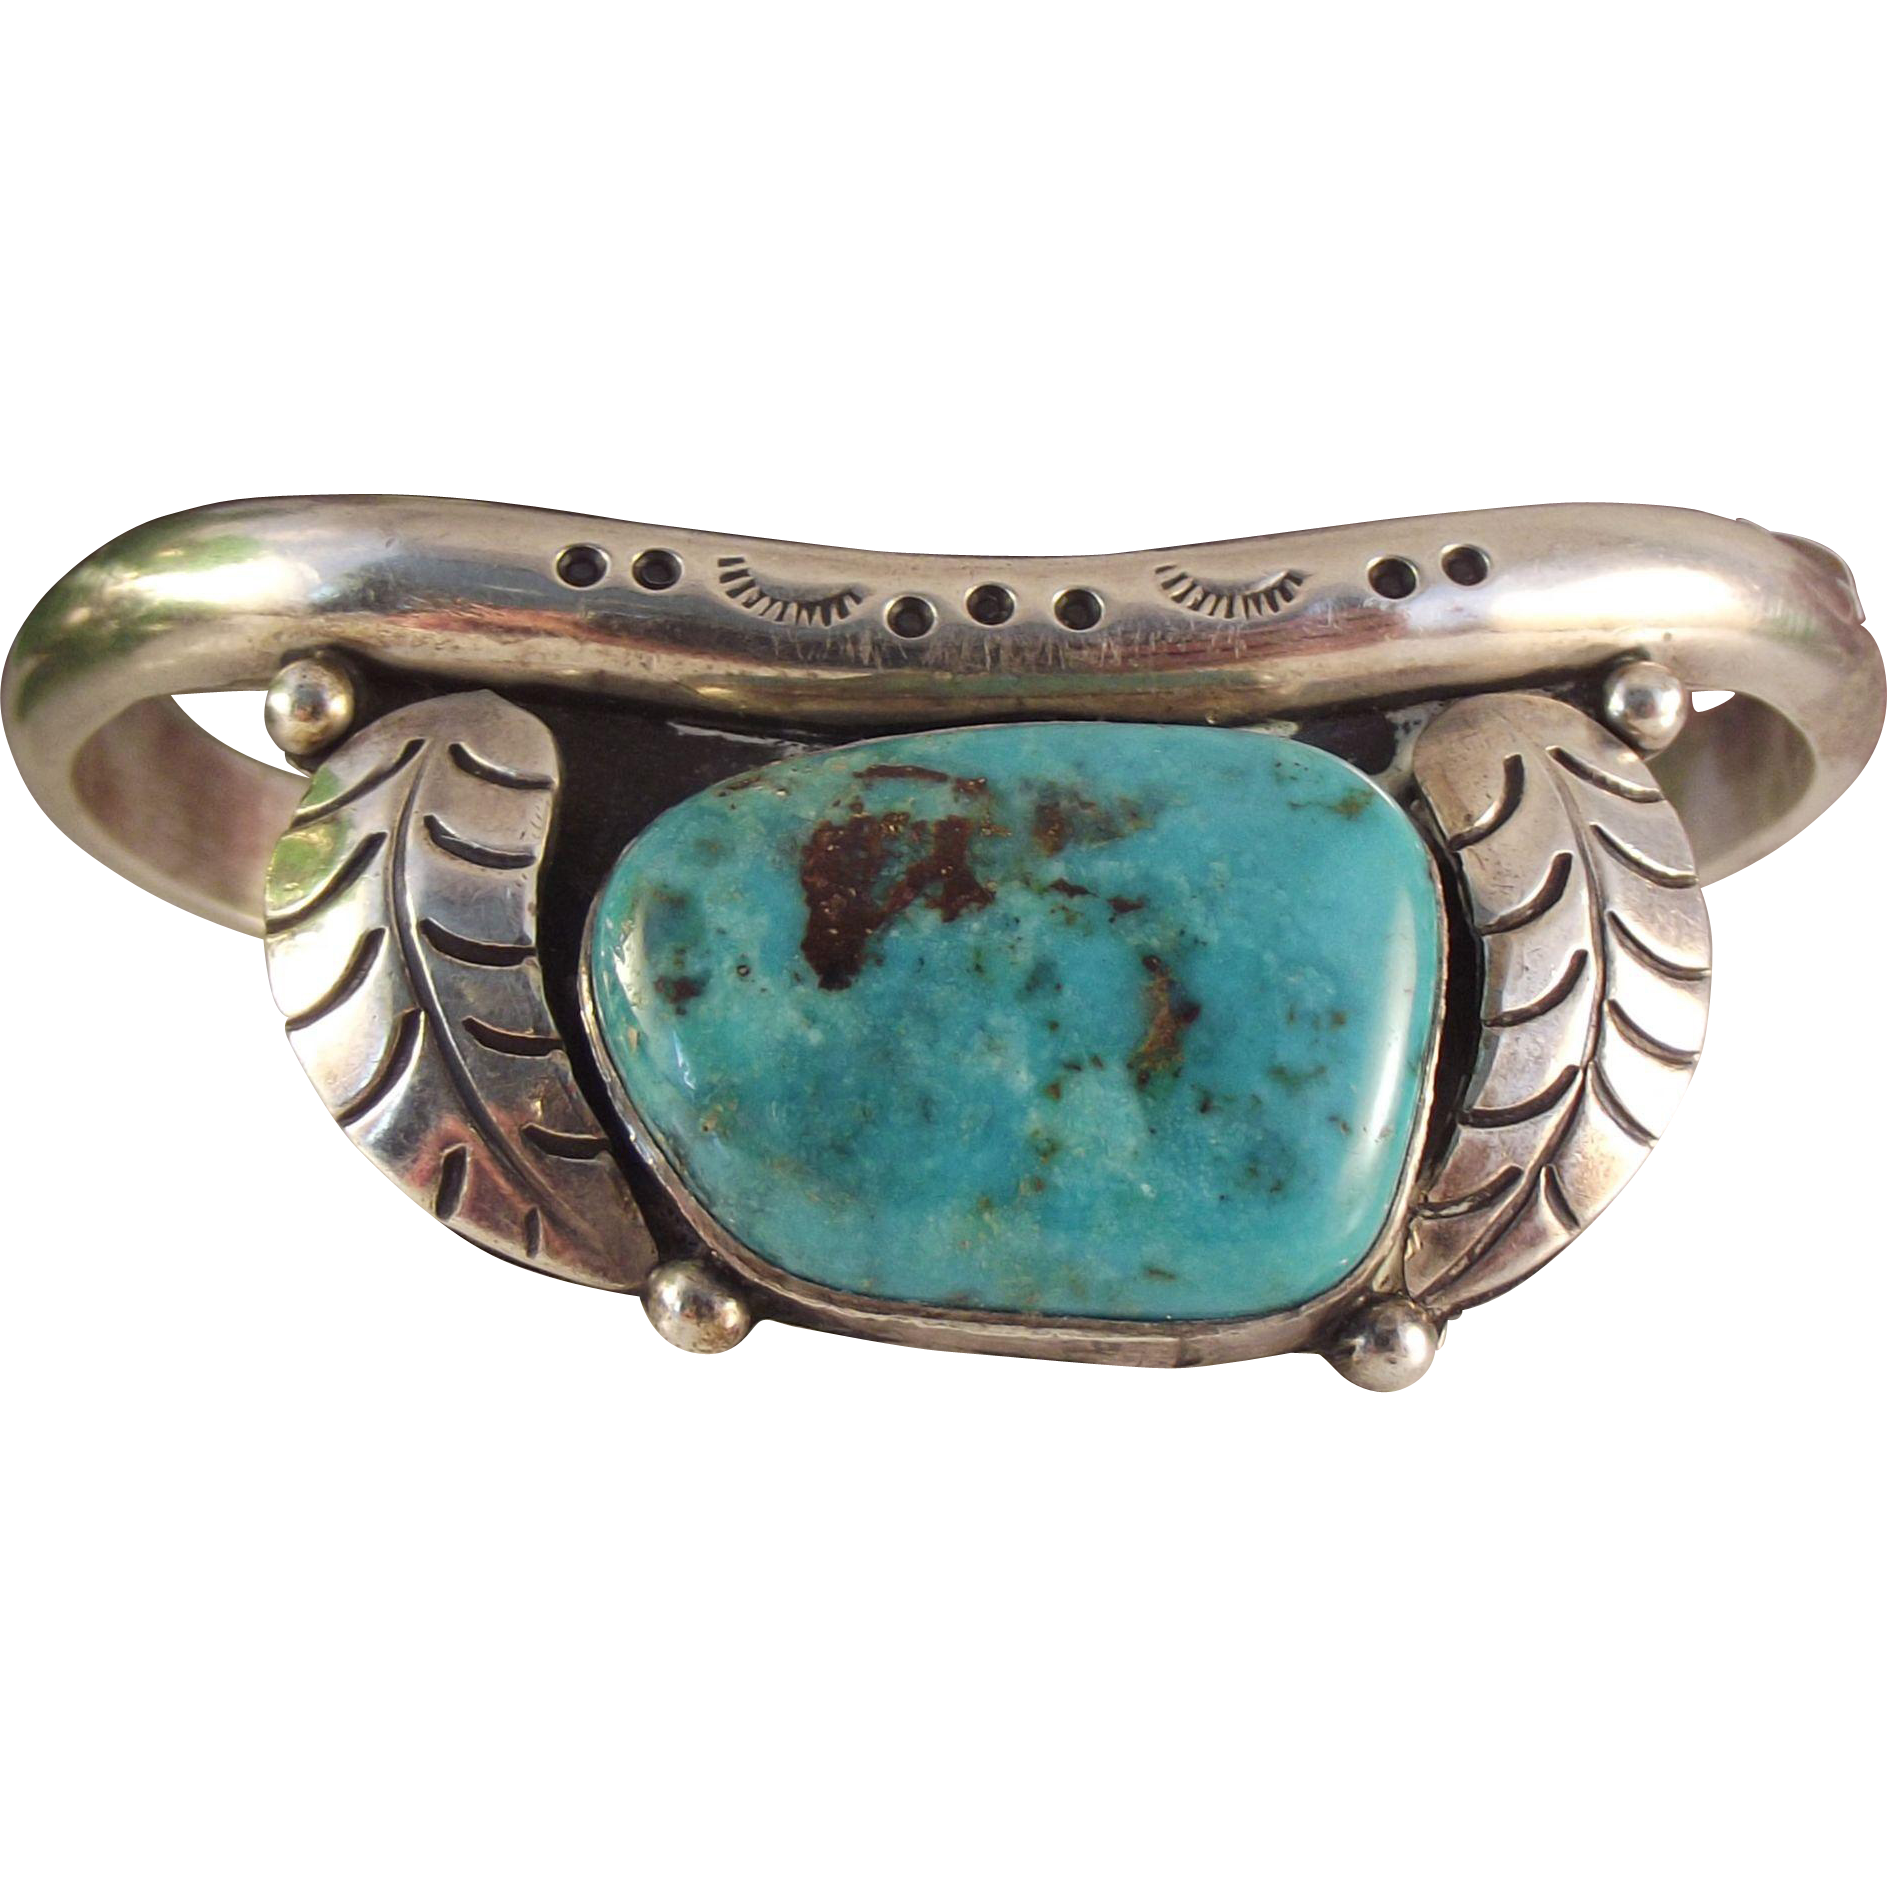 60s Native American Feather Motif Turquoise Bracelet Turquoise Bracelet Native American Feathers Turquoise